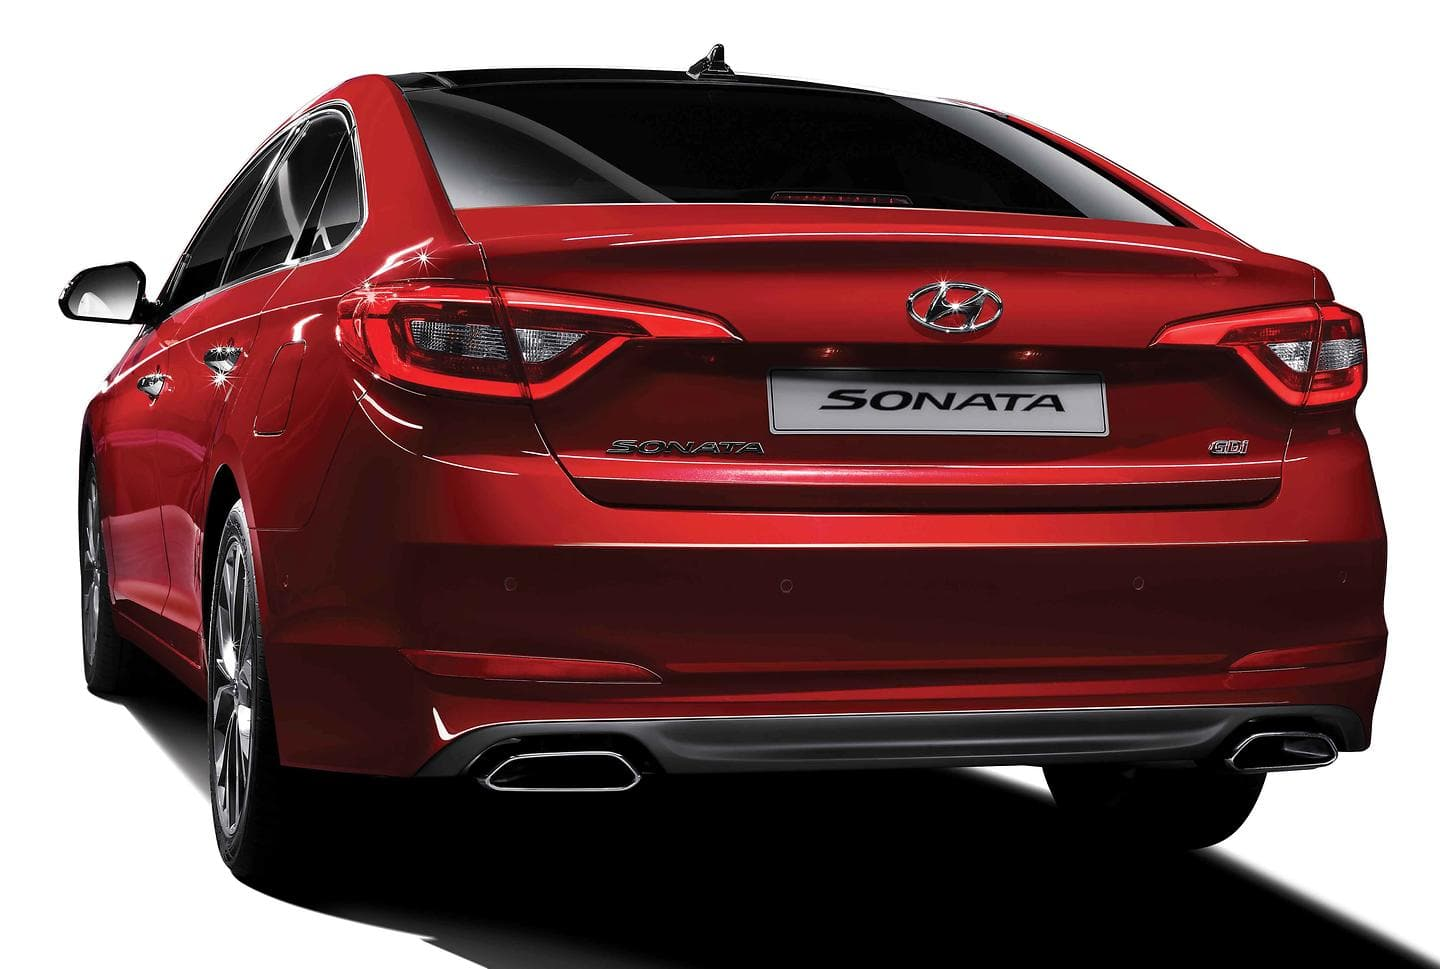 All New Sonata rear side view